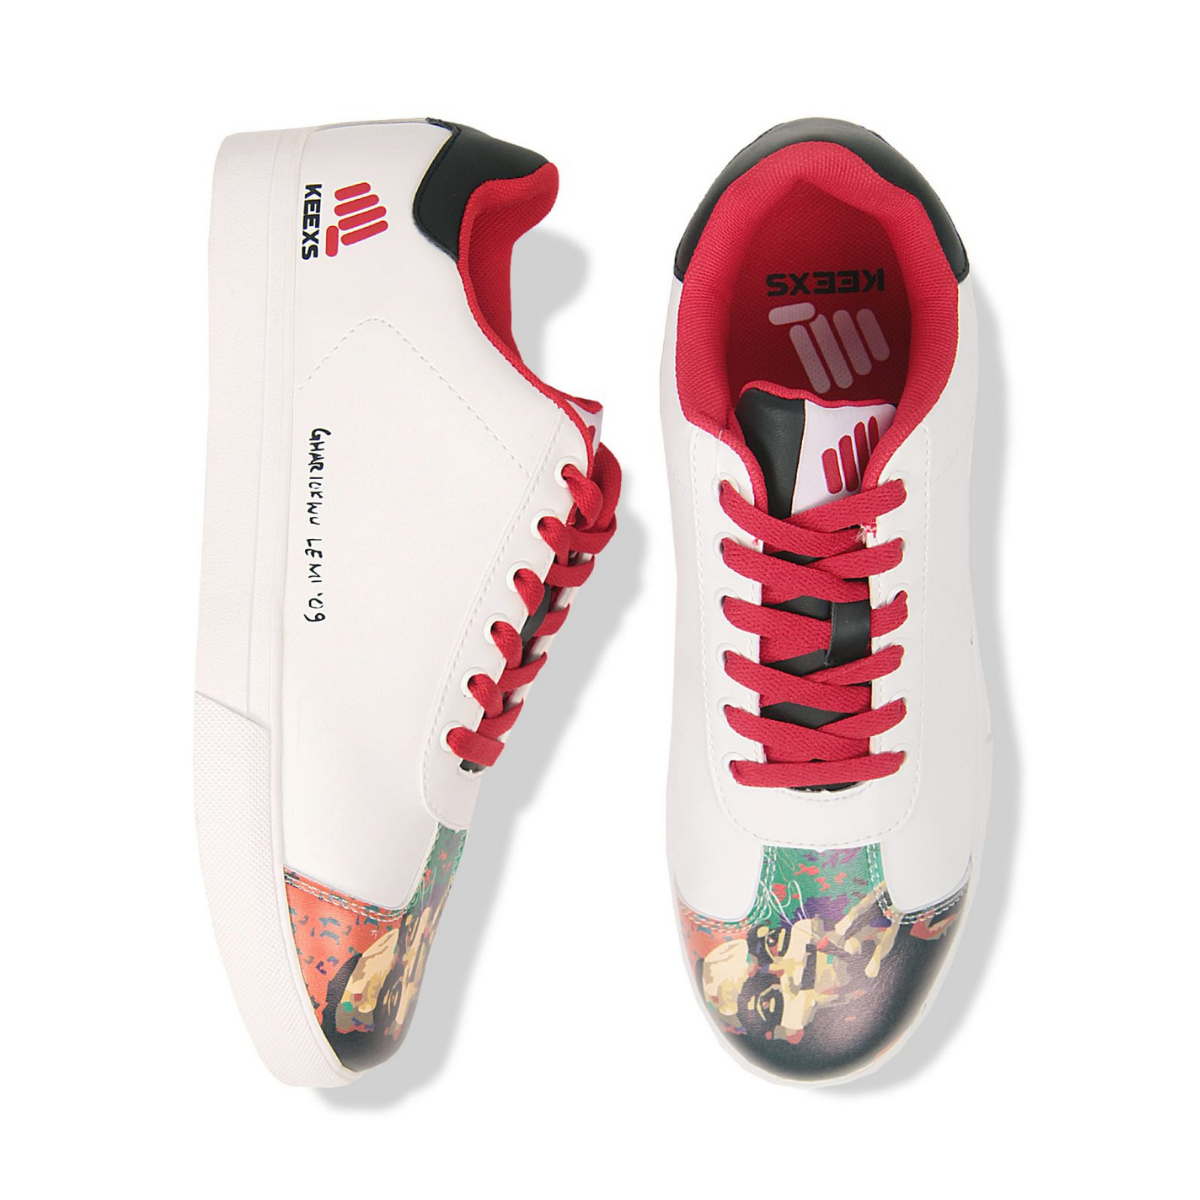 Ah-Free-Can (Fela Kuti) Sneakers